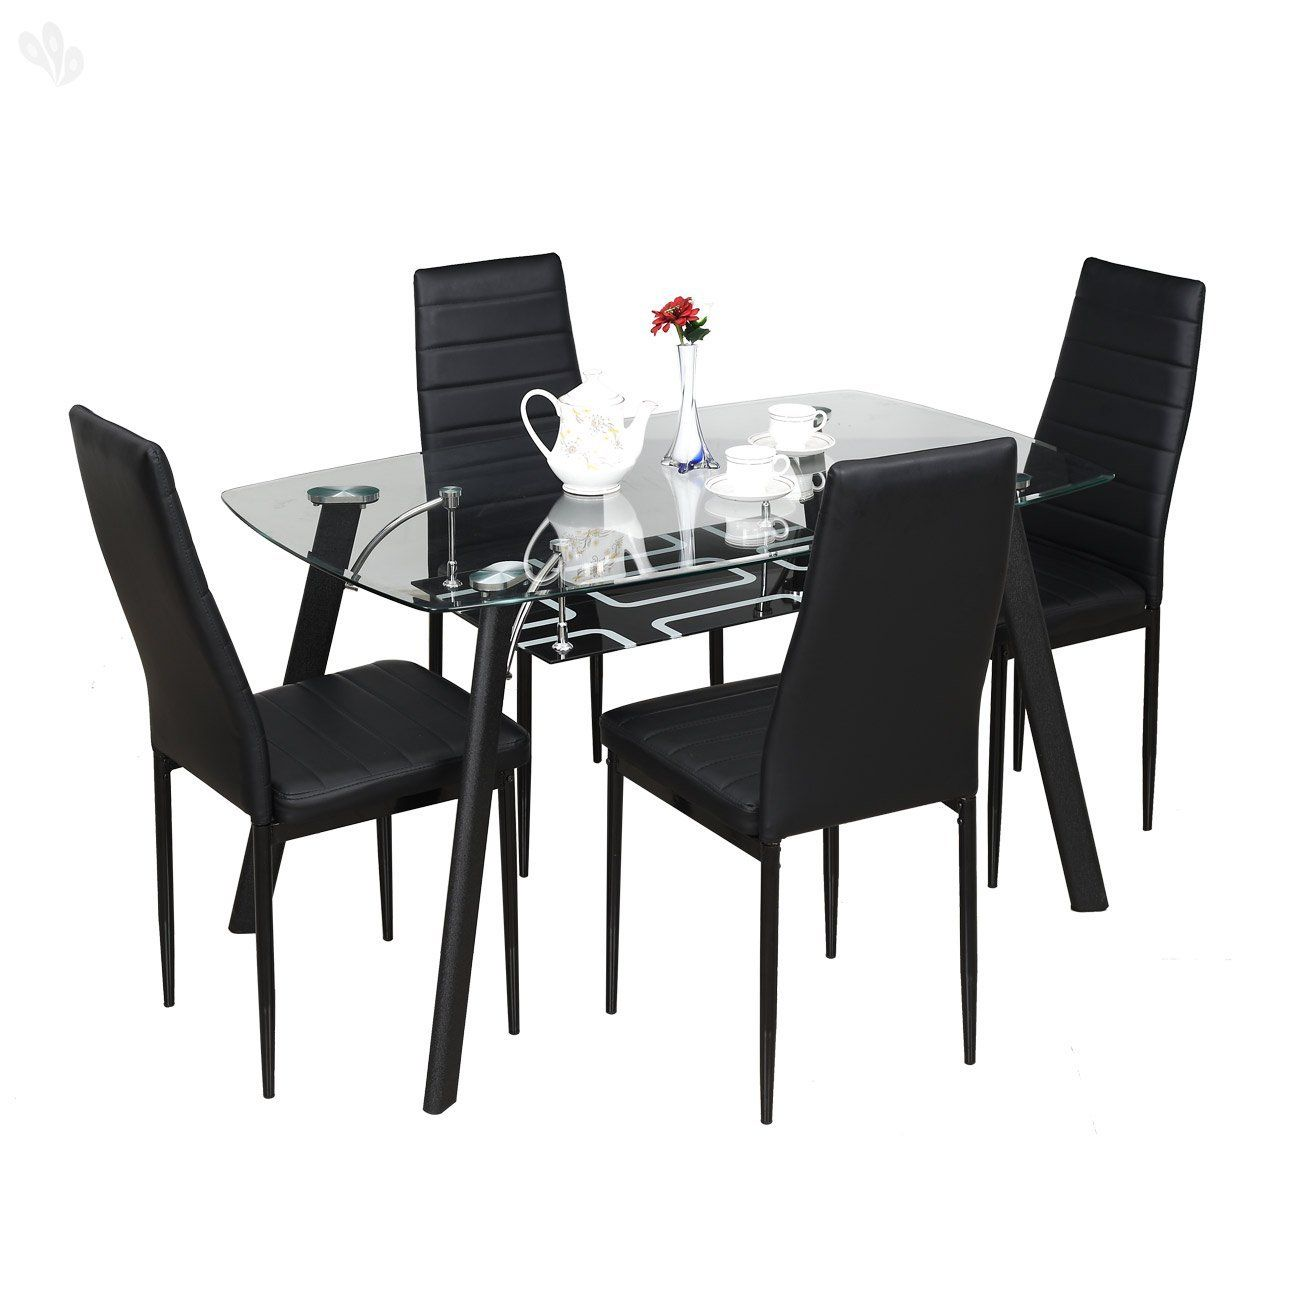 Good Royal Oak Milan Four Seater Dining Table Set (Black)   Best Home And Kitchen